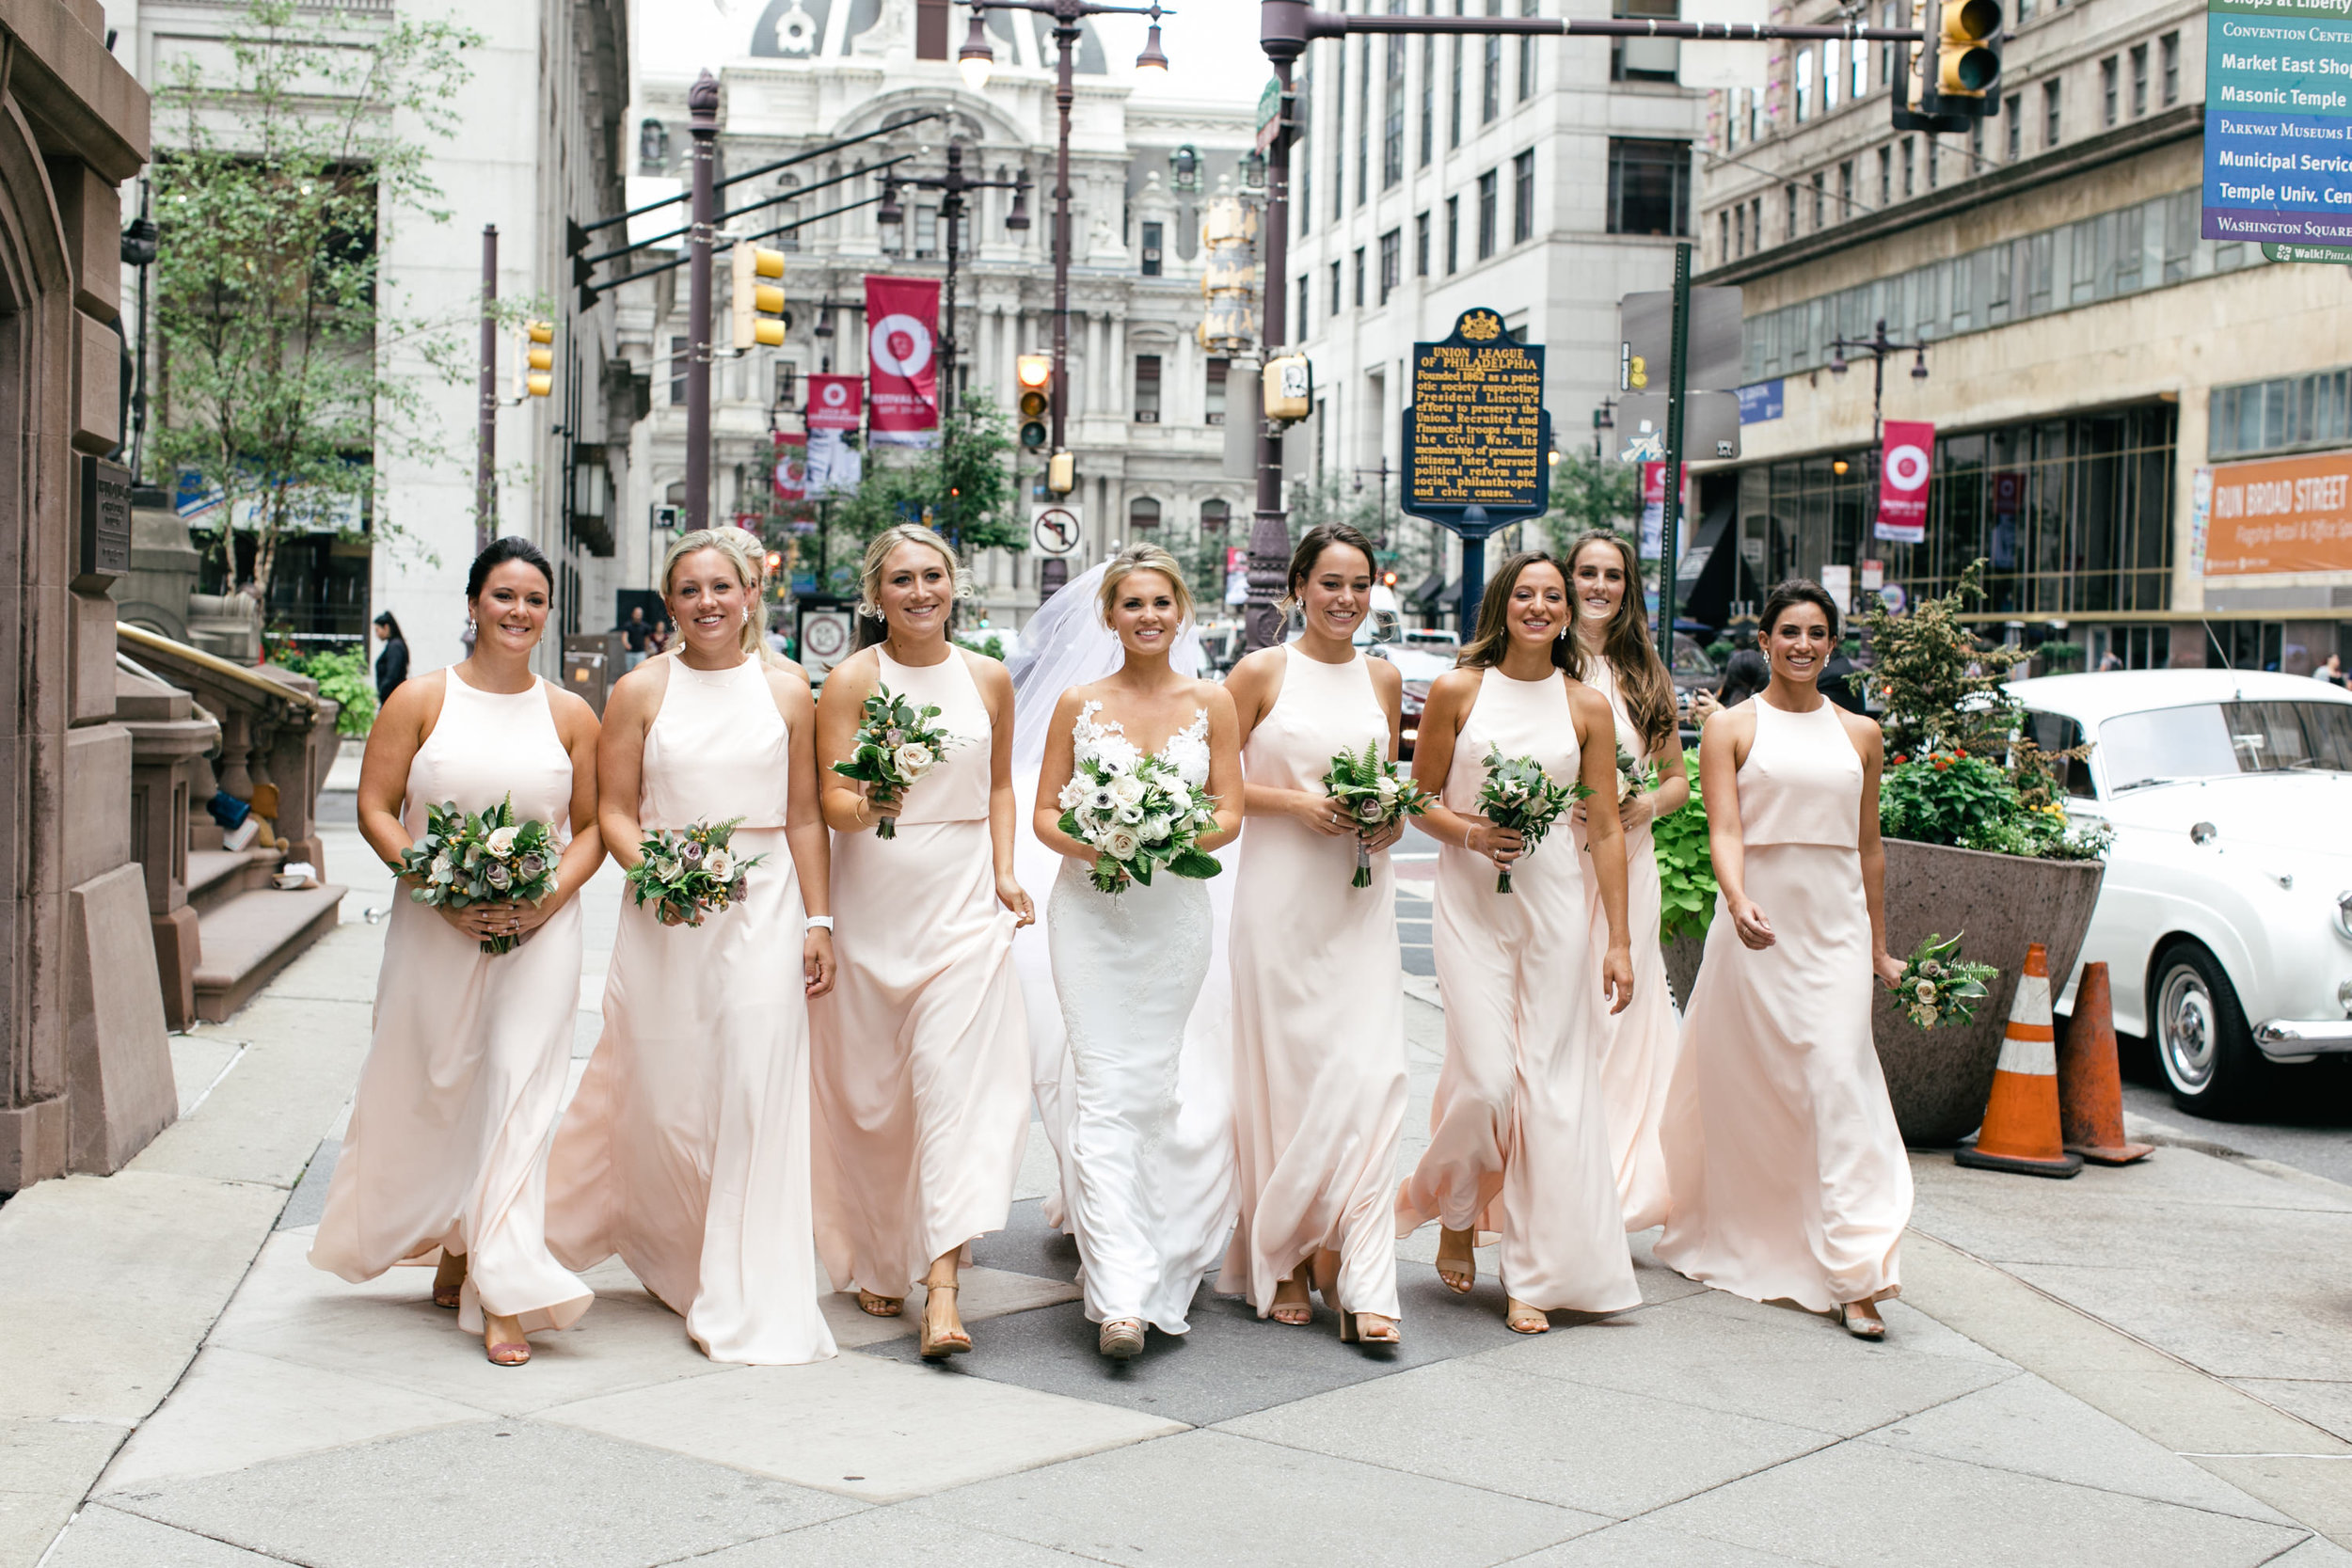 photography-wedding-weddings-natural-candid-union league-philadelphia-black tie-city hall-broad street-editorial-modern-fine-art-15.JPG